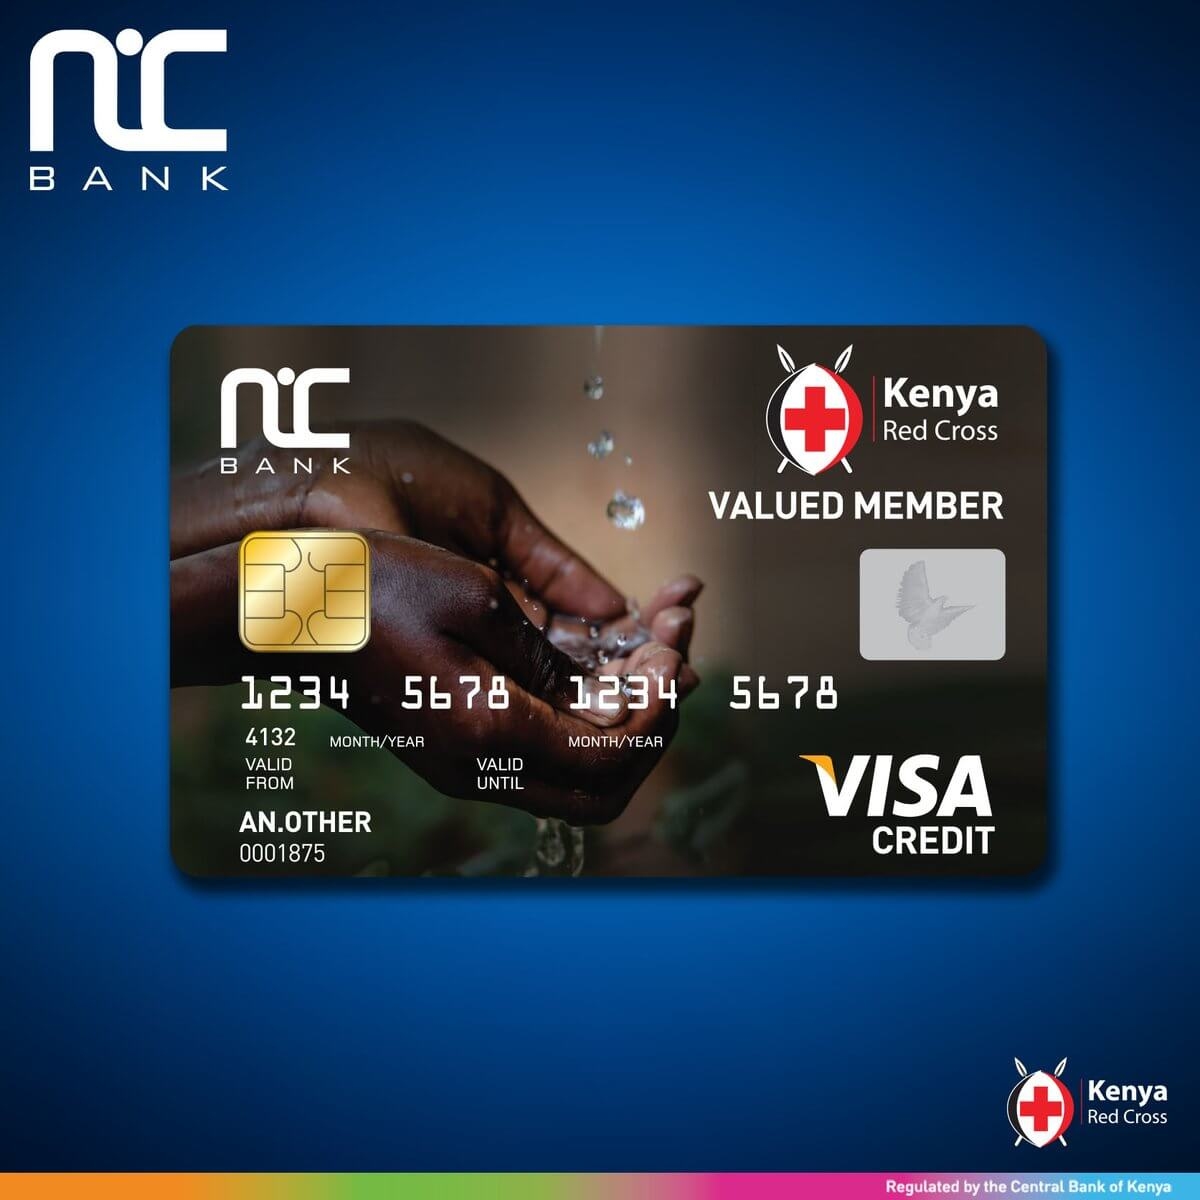 NIC Bank Kenya Red Cross Credit Card